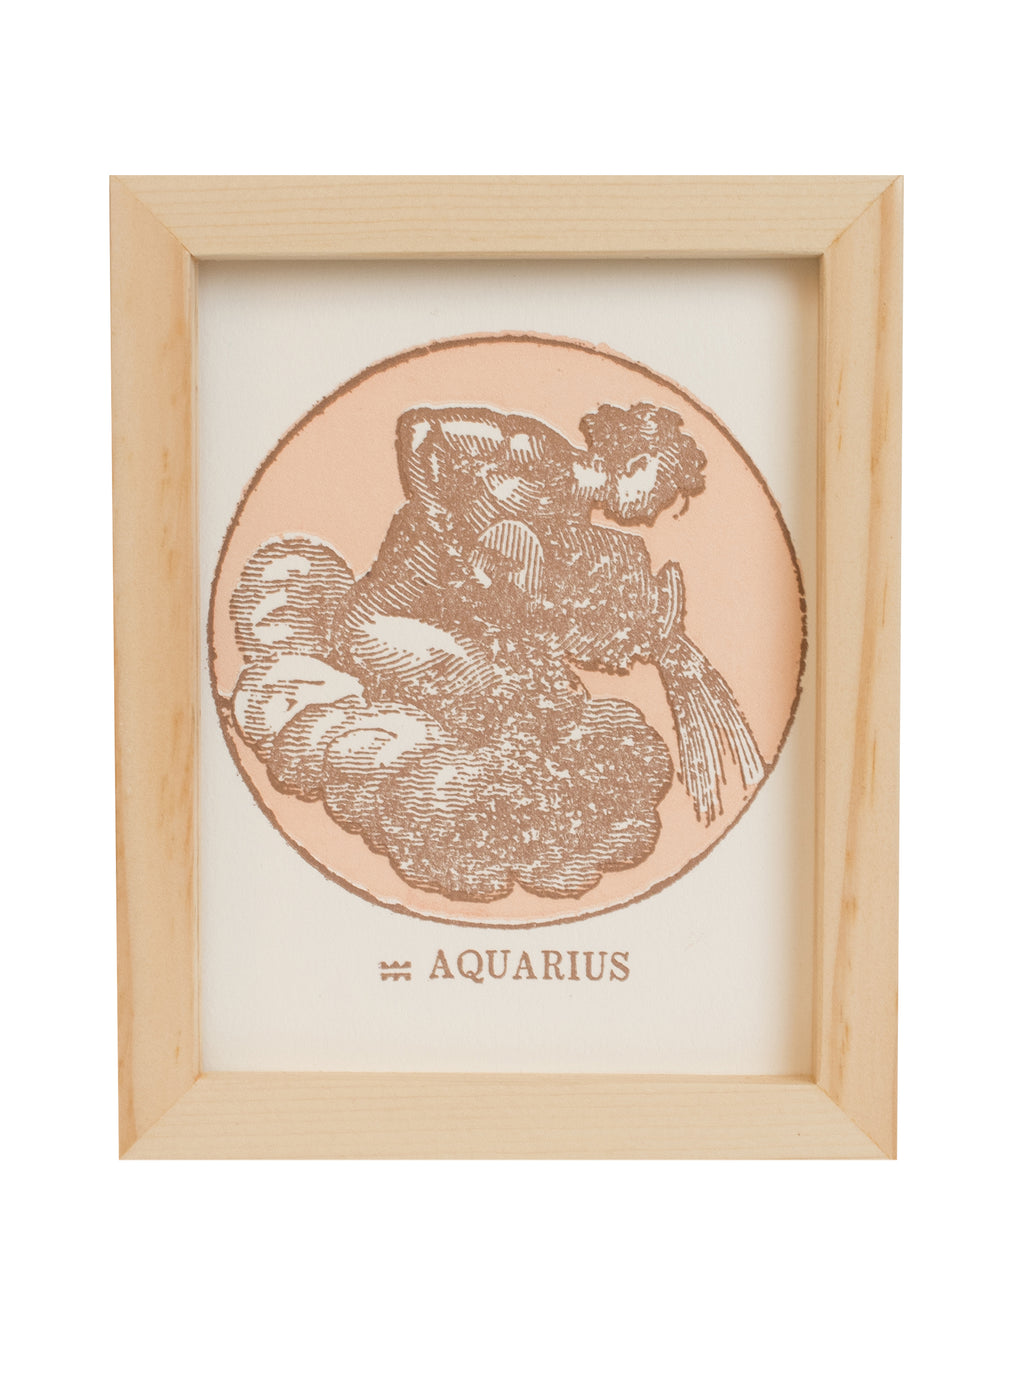 Aquarius (January 20 - February 18)